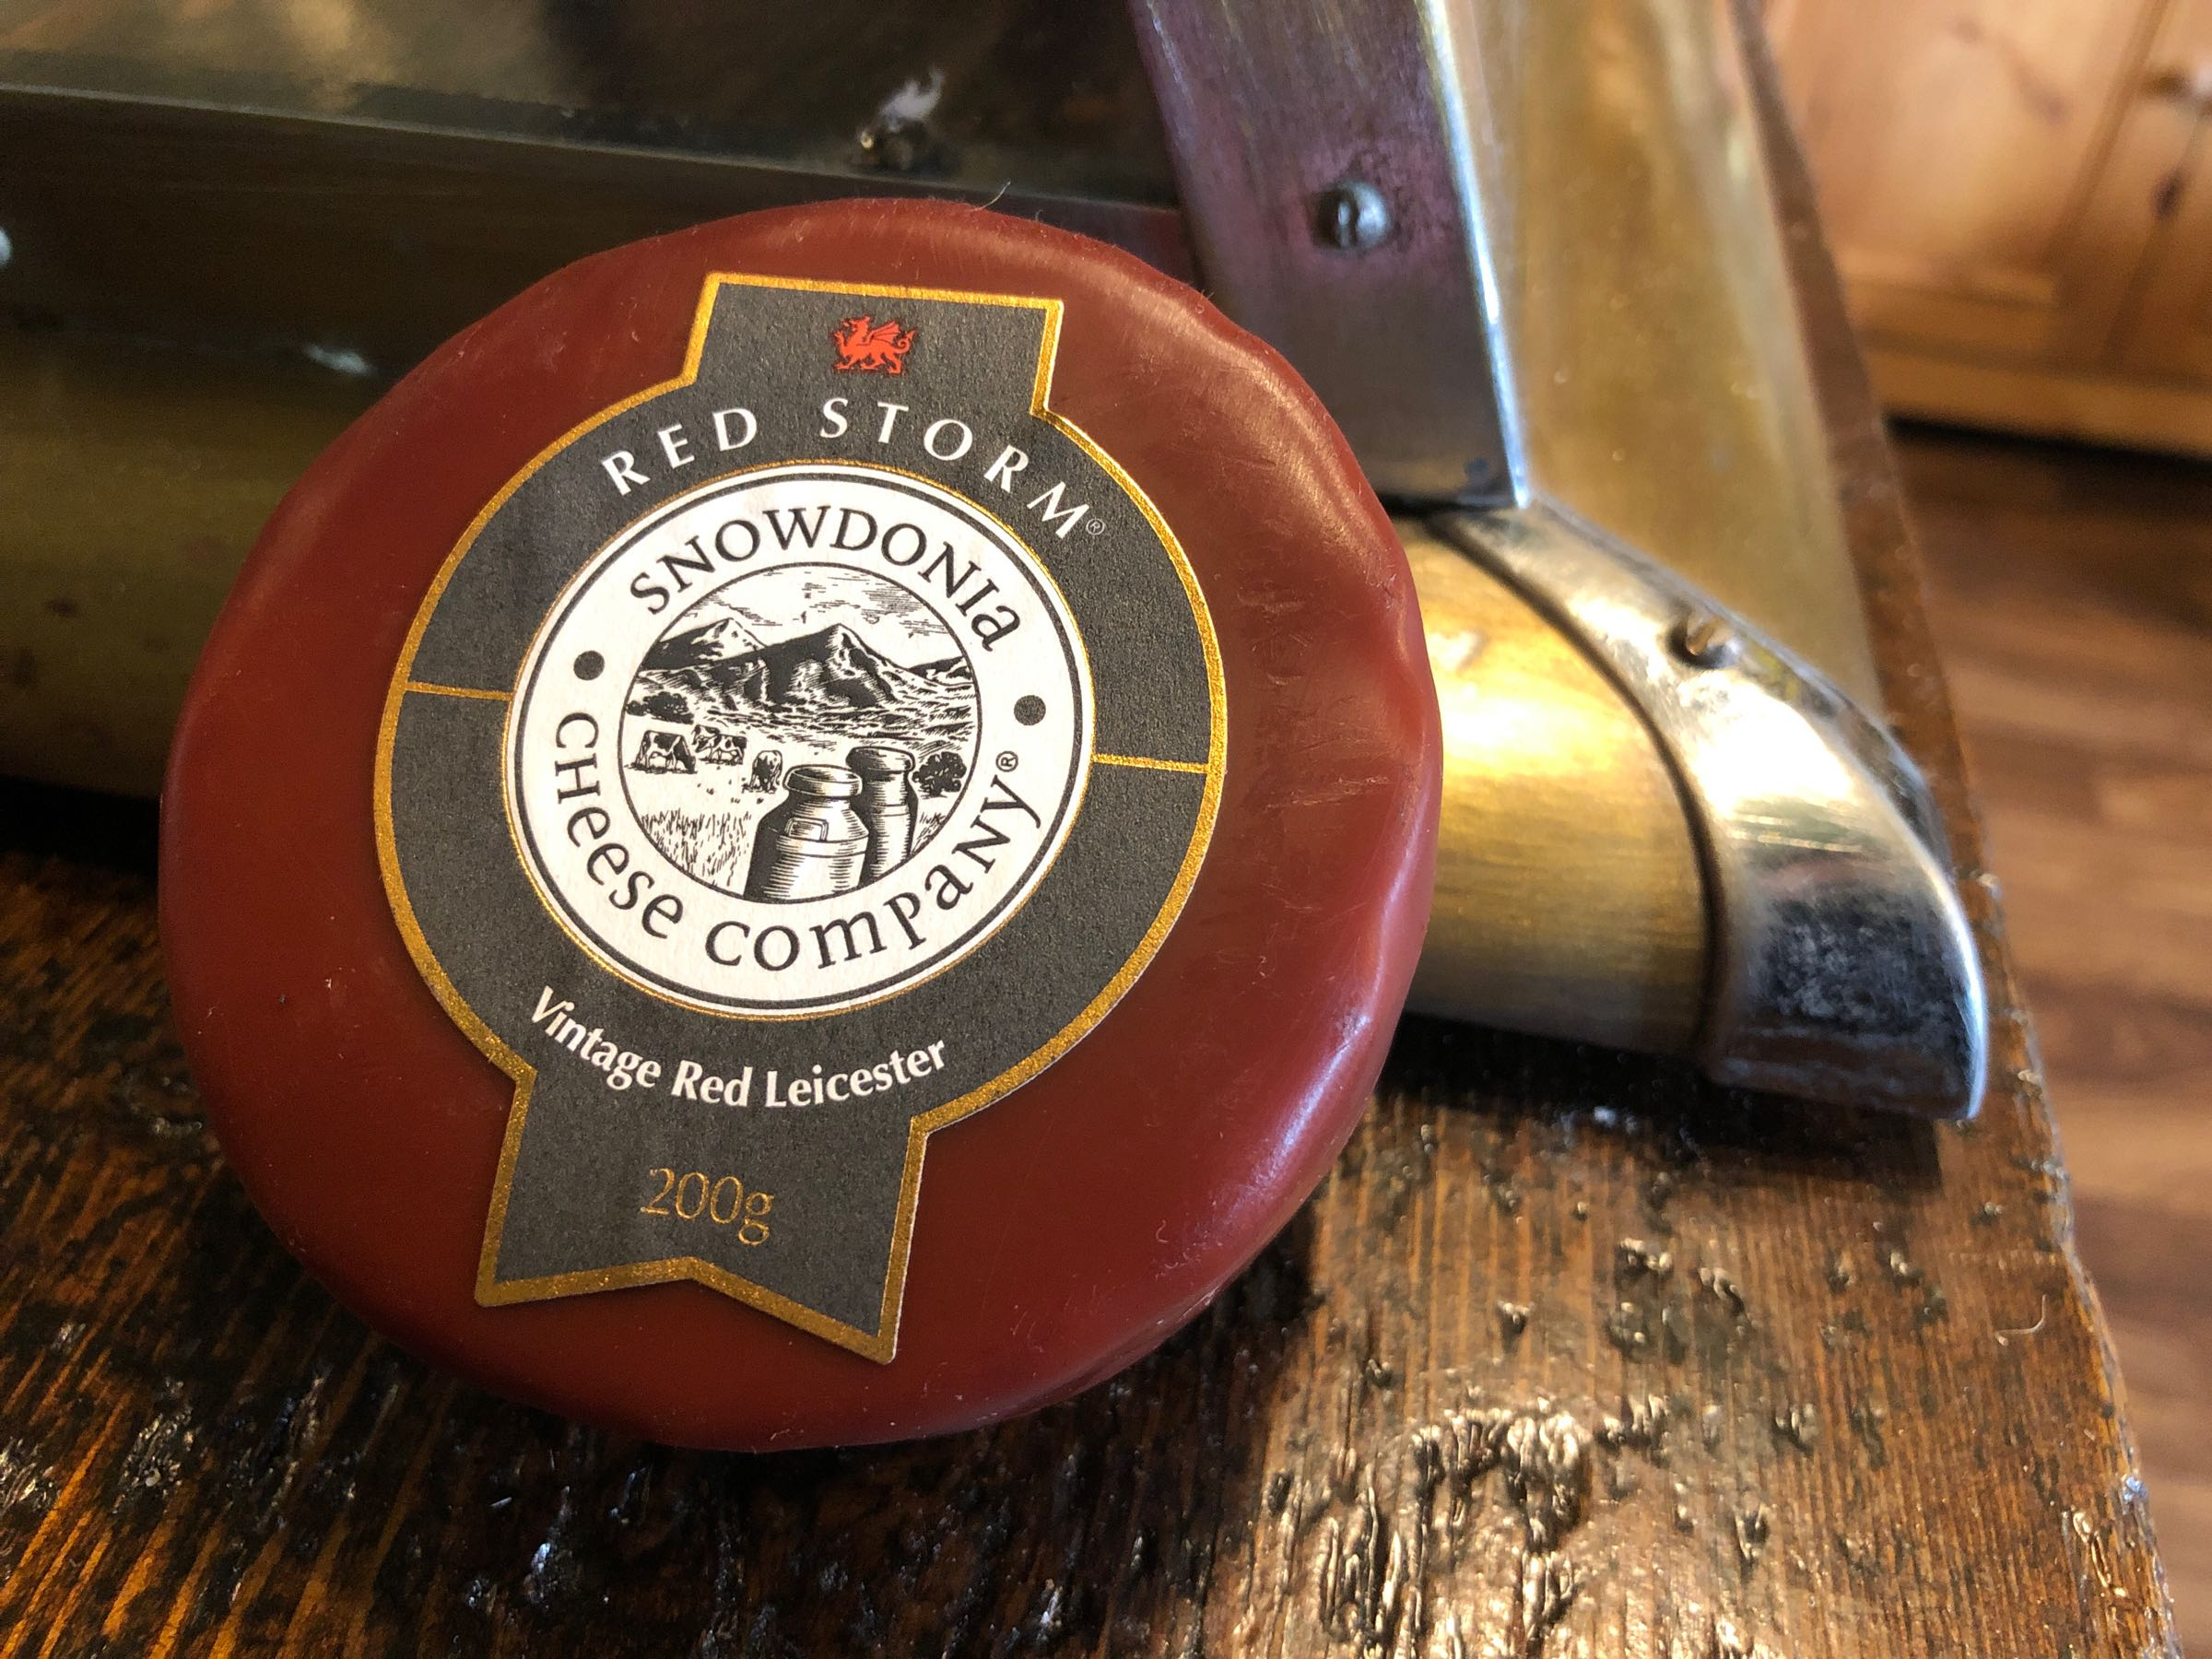 Snowdonia Cheese Co. Red Storm 200g